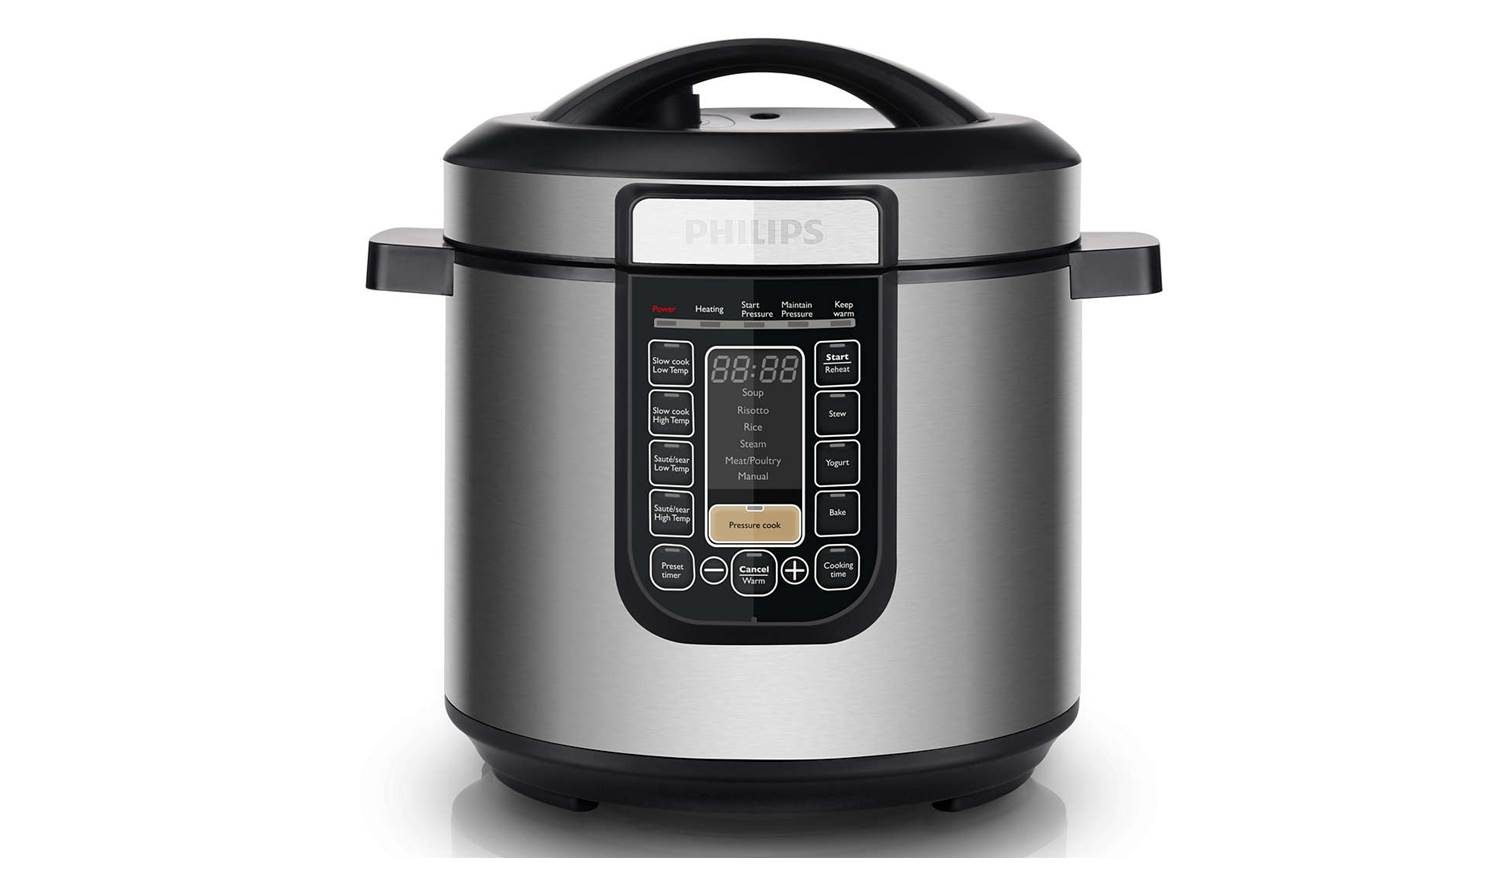 Philips Hd 2137 62 All In One Pressure Cooker Harvey